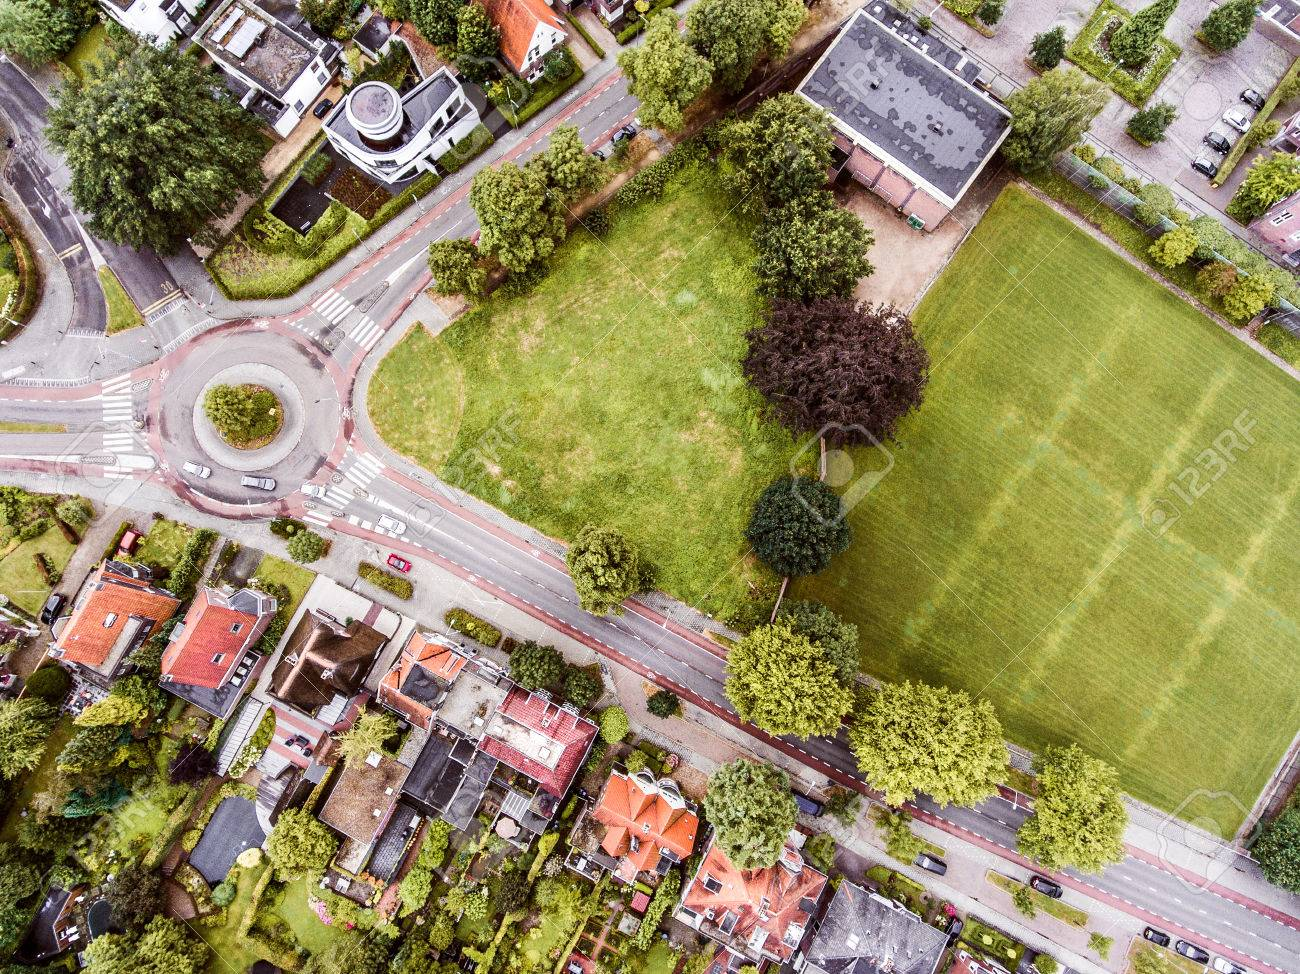 Aerial view of Dutch town, private houses, streets and roundabout, green park with trees - 61225635